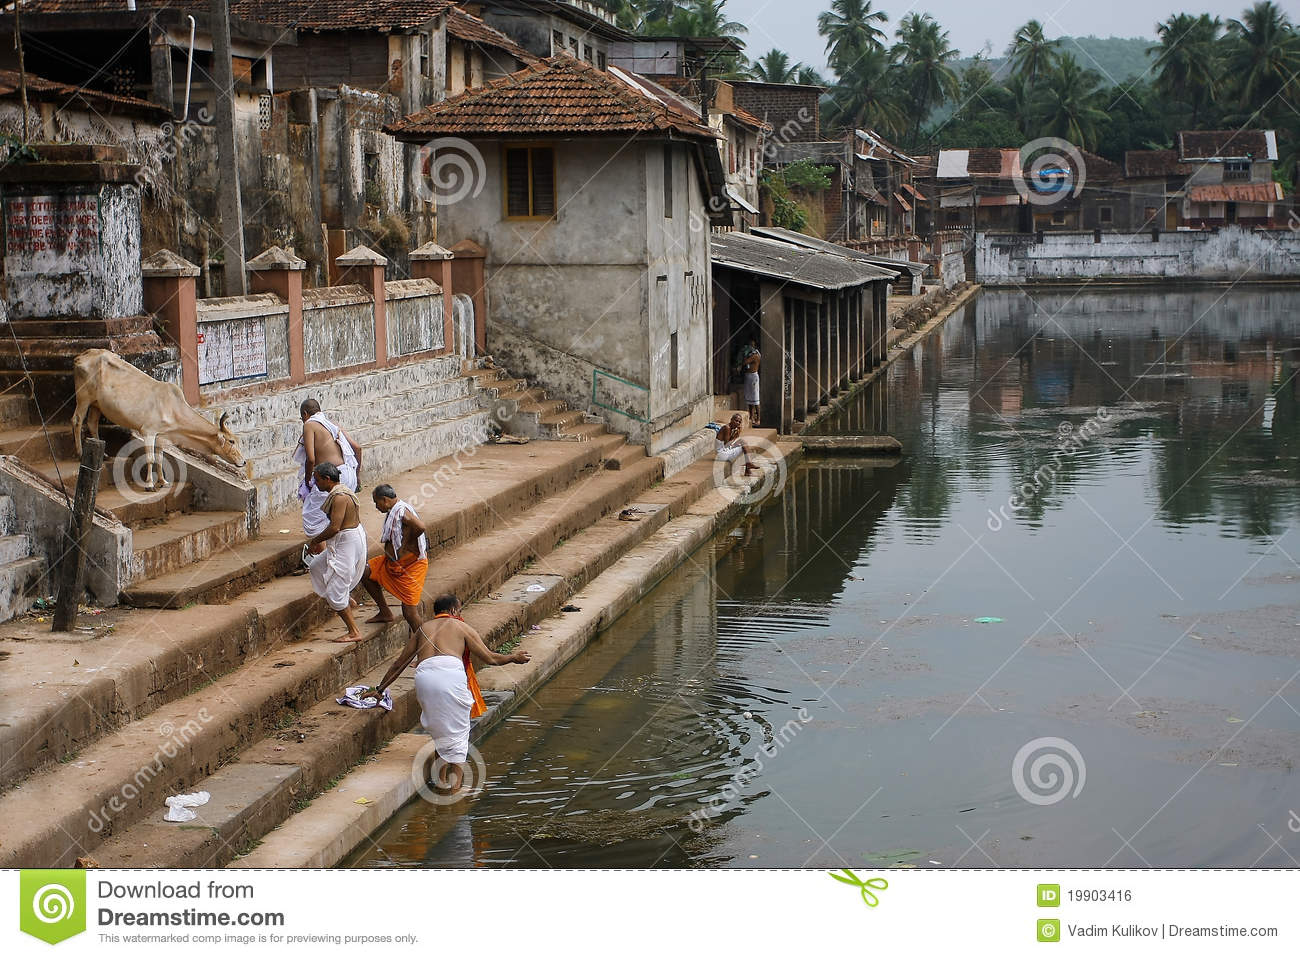 people-near-water-tank-ancient-indian-city-19903416.jpg